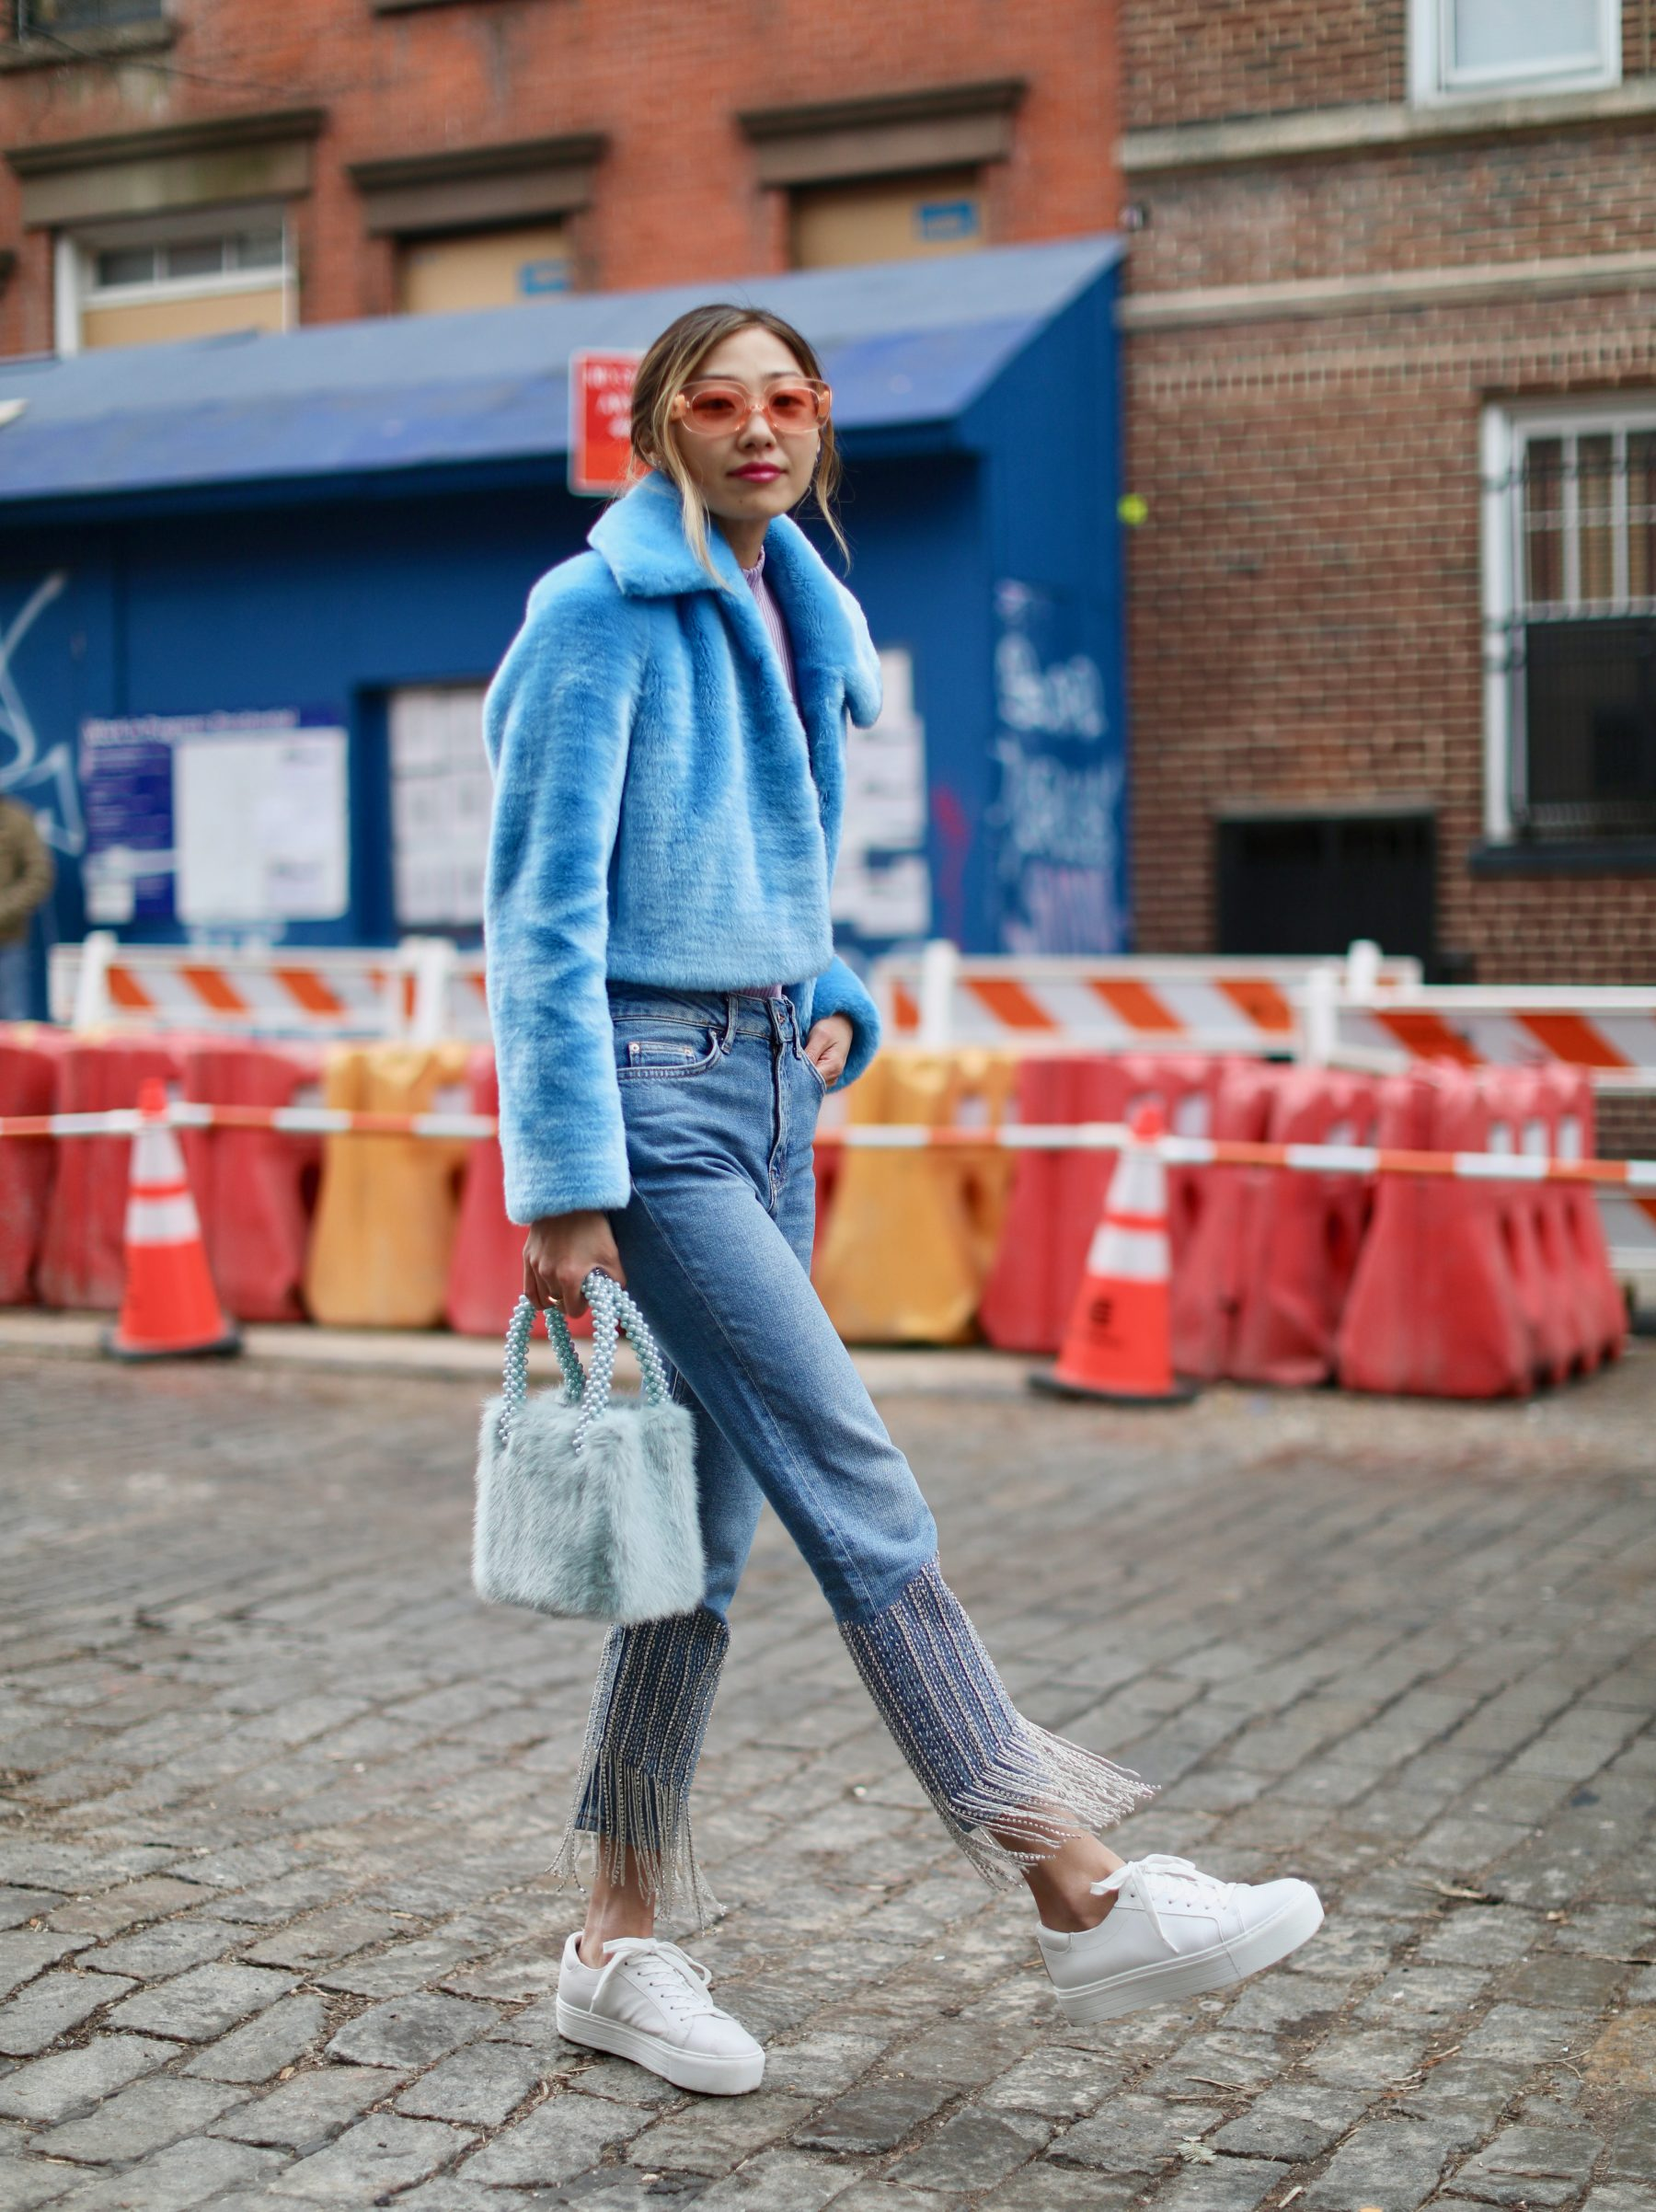 e38577761df075 Faux Fur and Fancy Jeans (NYFW Look) · February 23